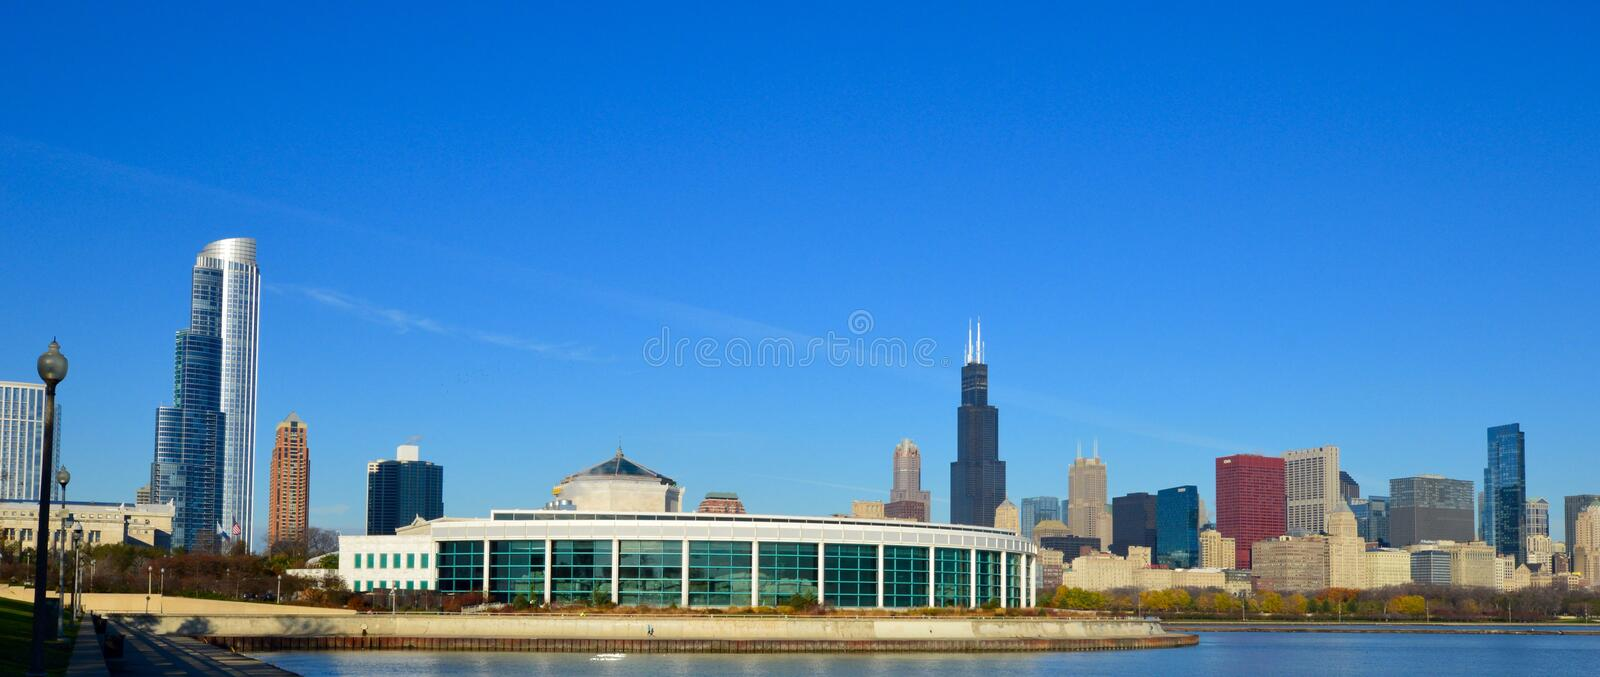 The Shedd. This is a picture of the Shedd Aquarium in Chicago, Illinois. The aquarium was designed by the Architects Graham, Anderson, Probst, and White, and royalty free stock photography